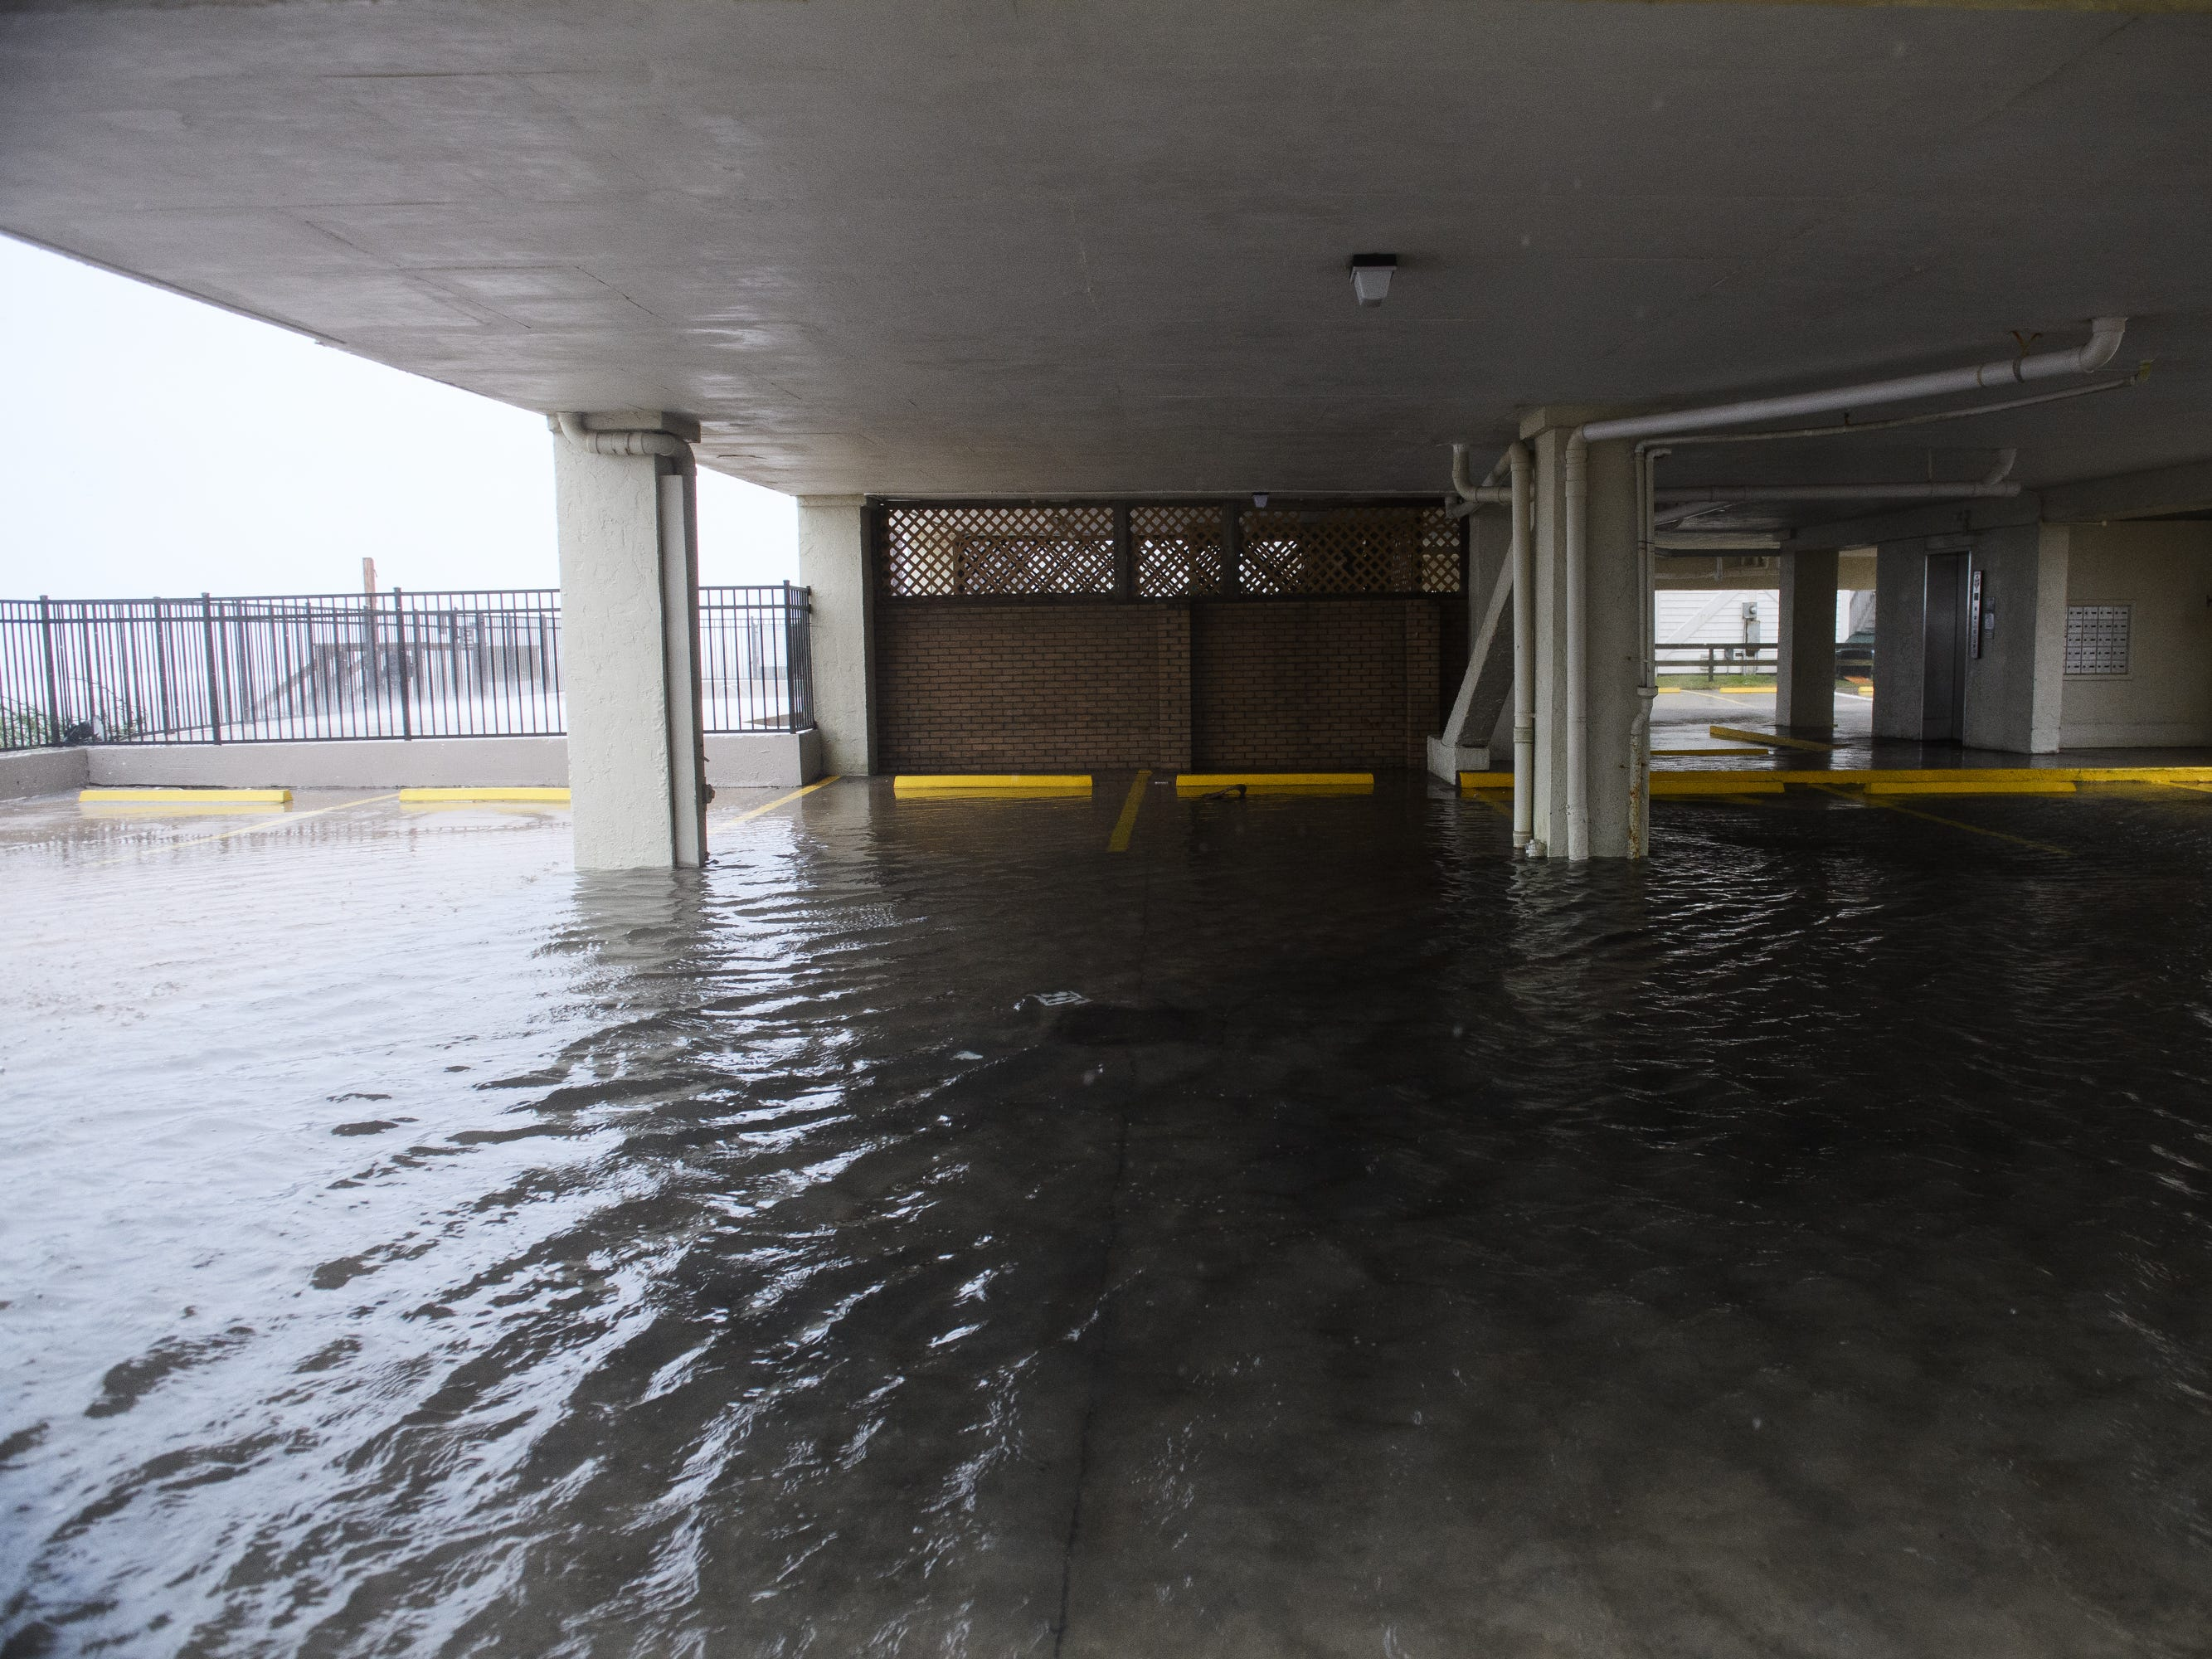 A parking structure under a high rise is flooded due to Hurricane Florence rainfall in North Myrtle Beach on Friday, Sept. 14, 2018.